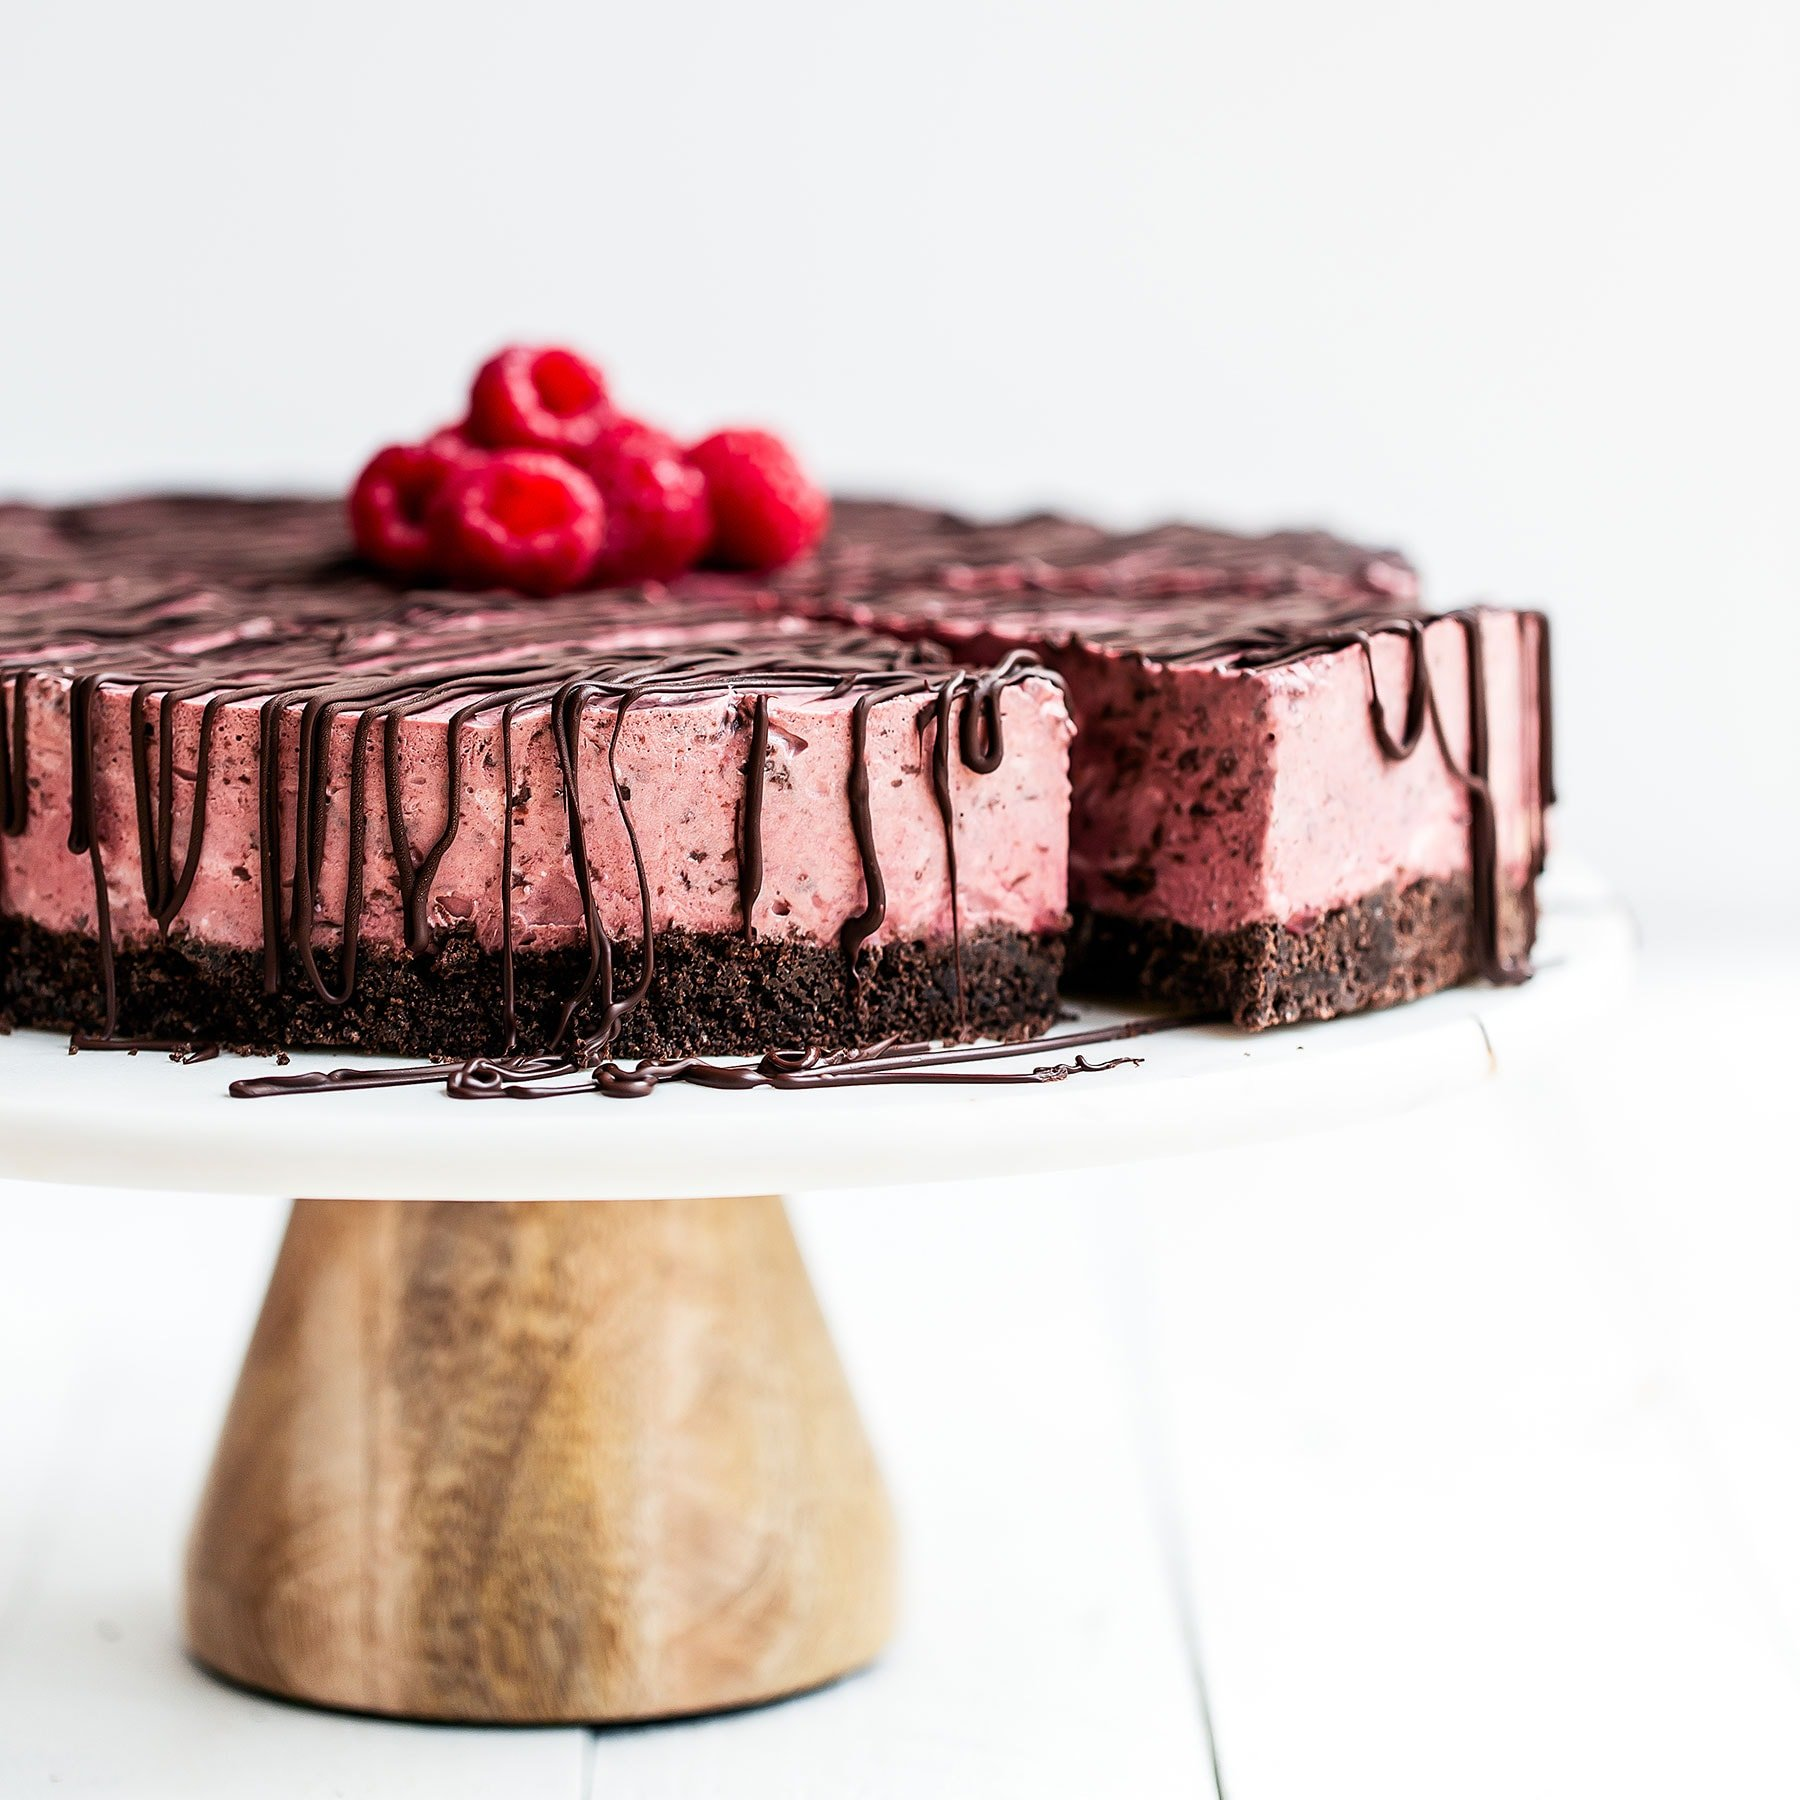 No Bake Frozen Chocolate Raspberry Pie features a chocolate graham cracker crust, creamy chocolate raspberry filling, and is topped with more chocolate! Perfect refreshing summer treat.